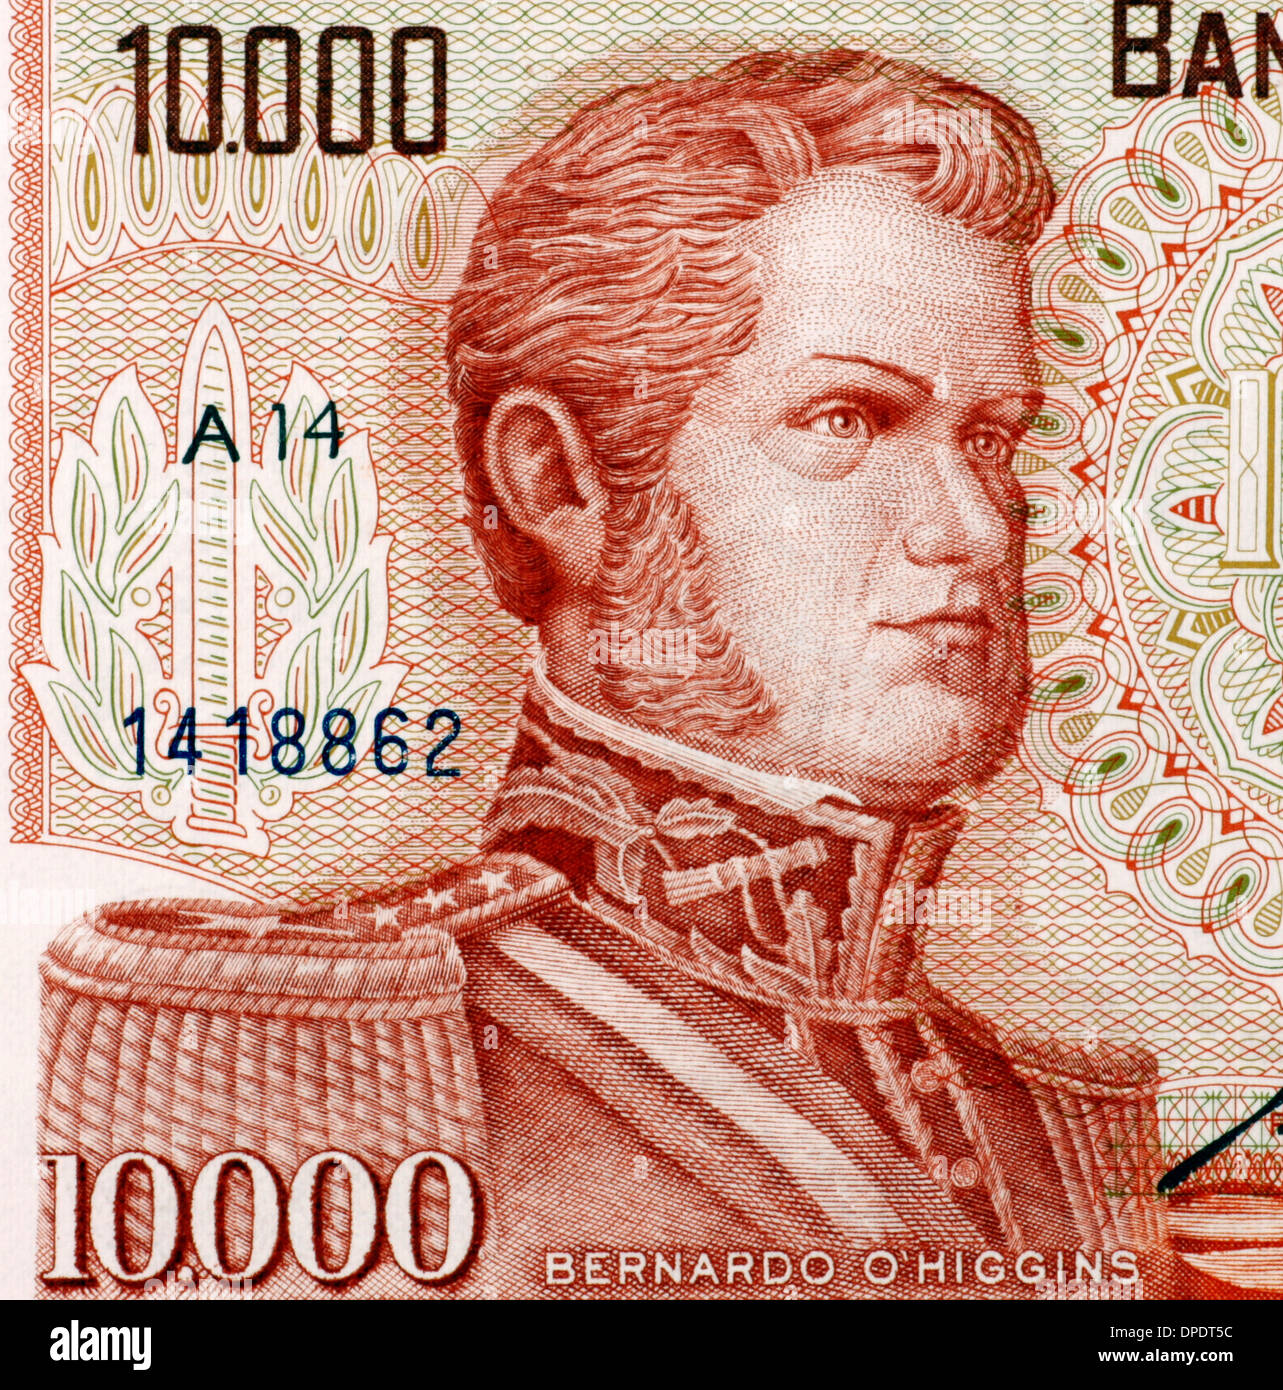 Bernardo O'Higgins (1778-1842) on 10000 Escudos 1970 from Chile. Chilean independence leader. - Stock Image